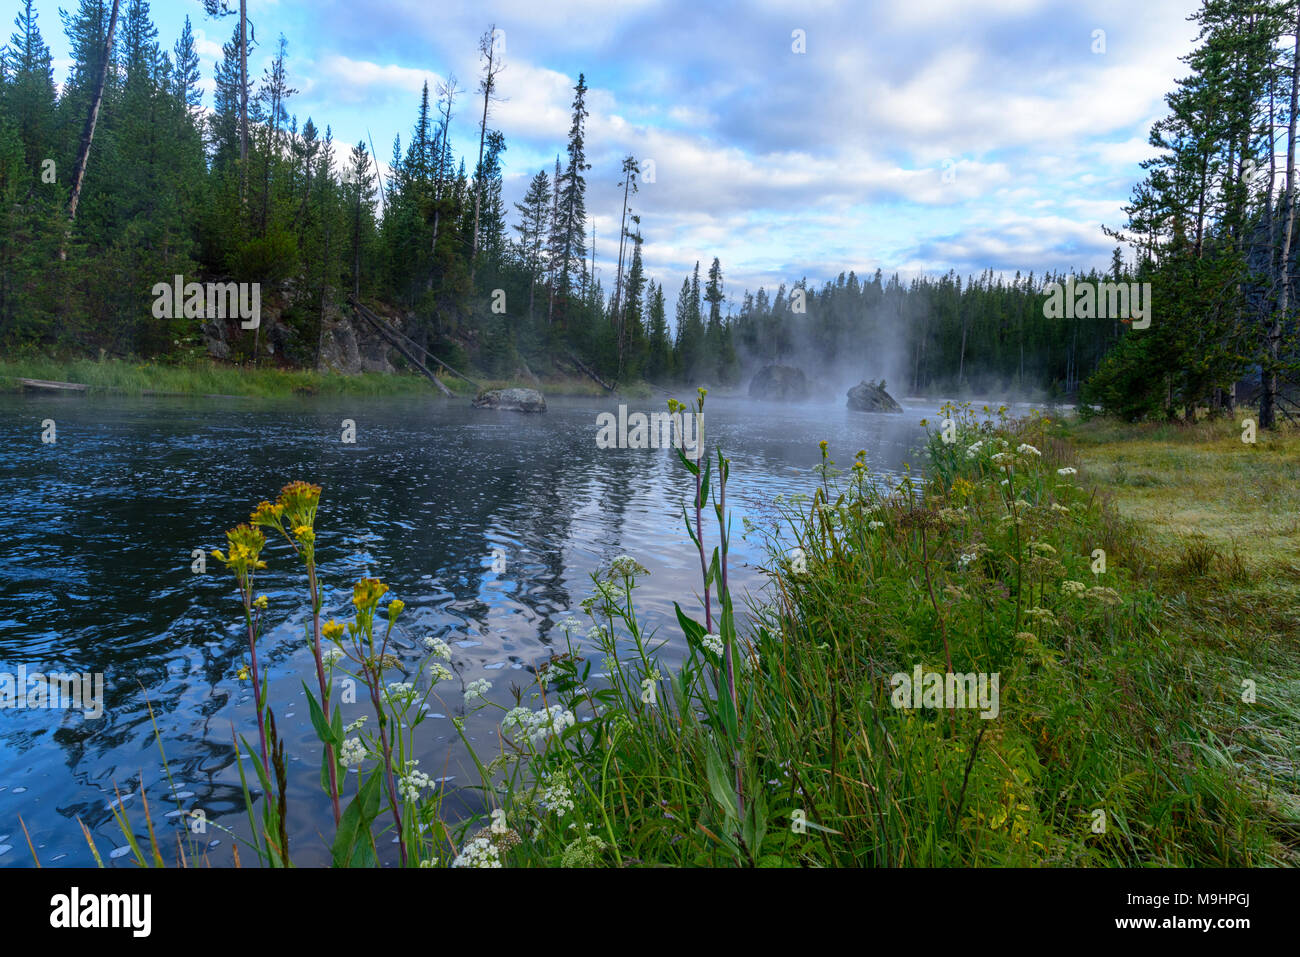 Wide angle low to ground view with flowers in foreground, slow moving river with green fields and forest under bright blue sky with white clouds. - Stock Image